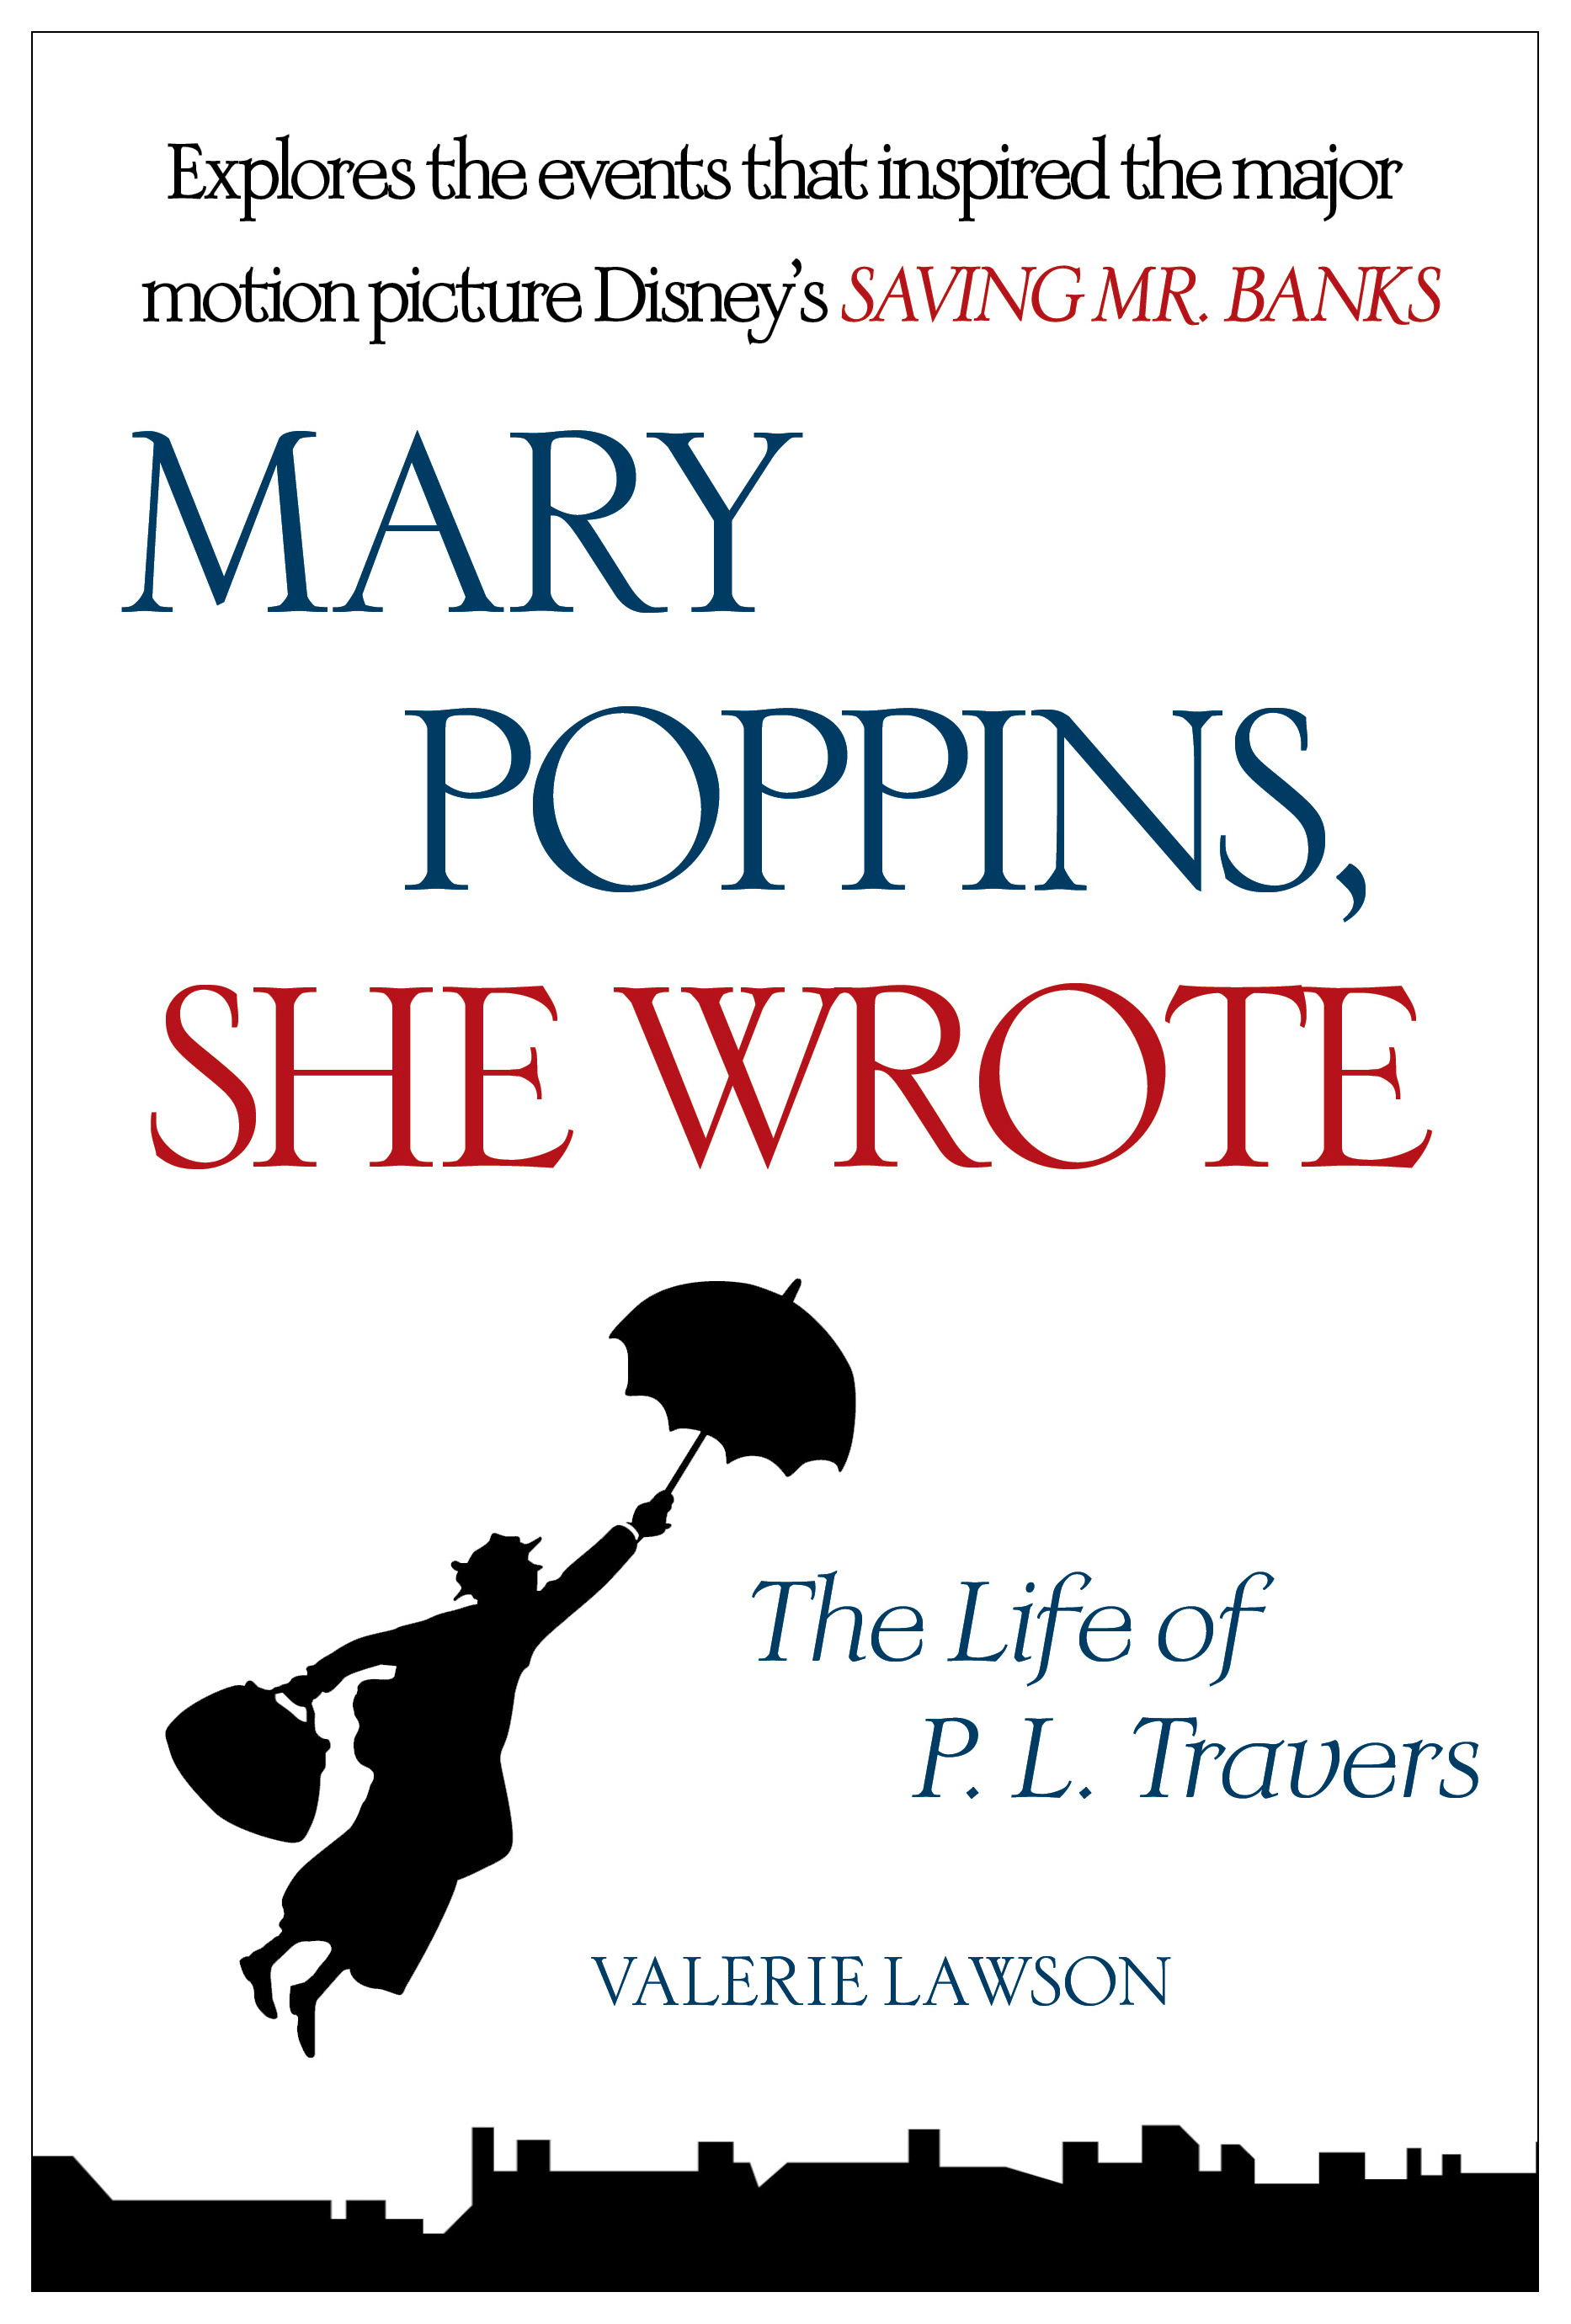 Mary poppins she wrote 9781476762920 hr